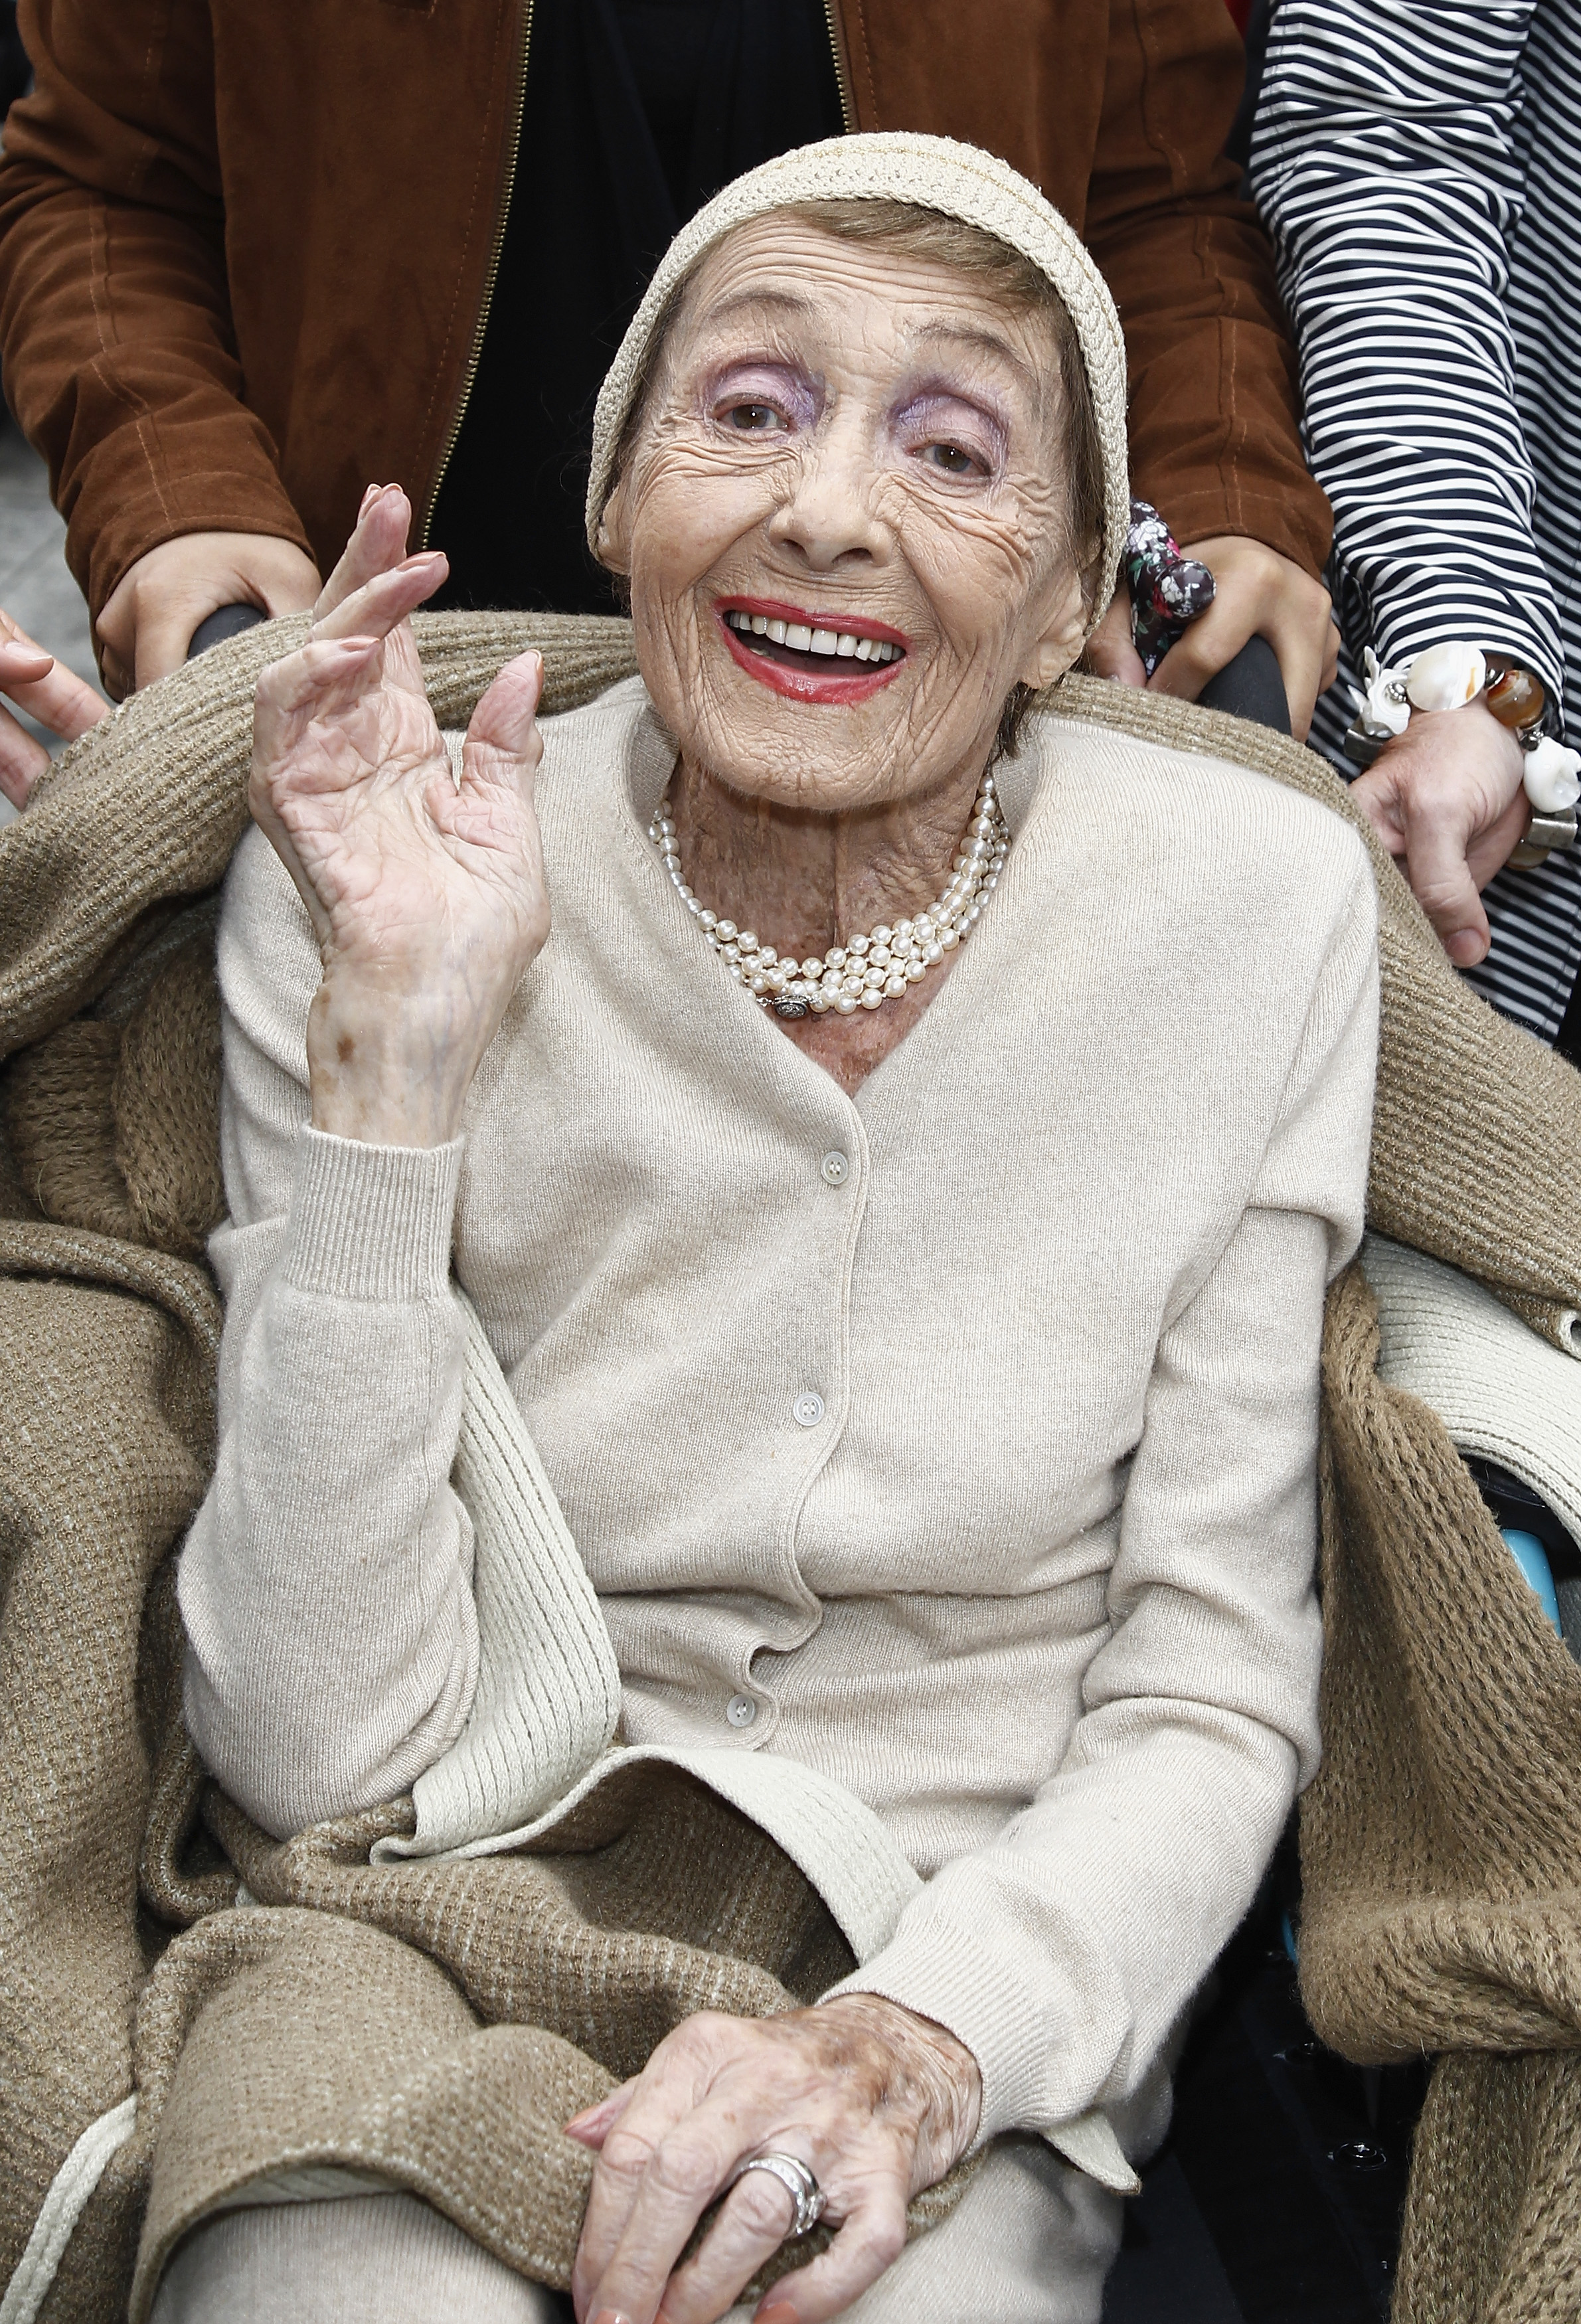 Luise Rainer at a ceremony with a Star on the Berlin Walk of Fame in Berlin, Germany on Sep. 5, 2011.